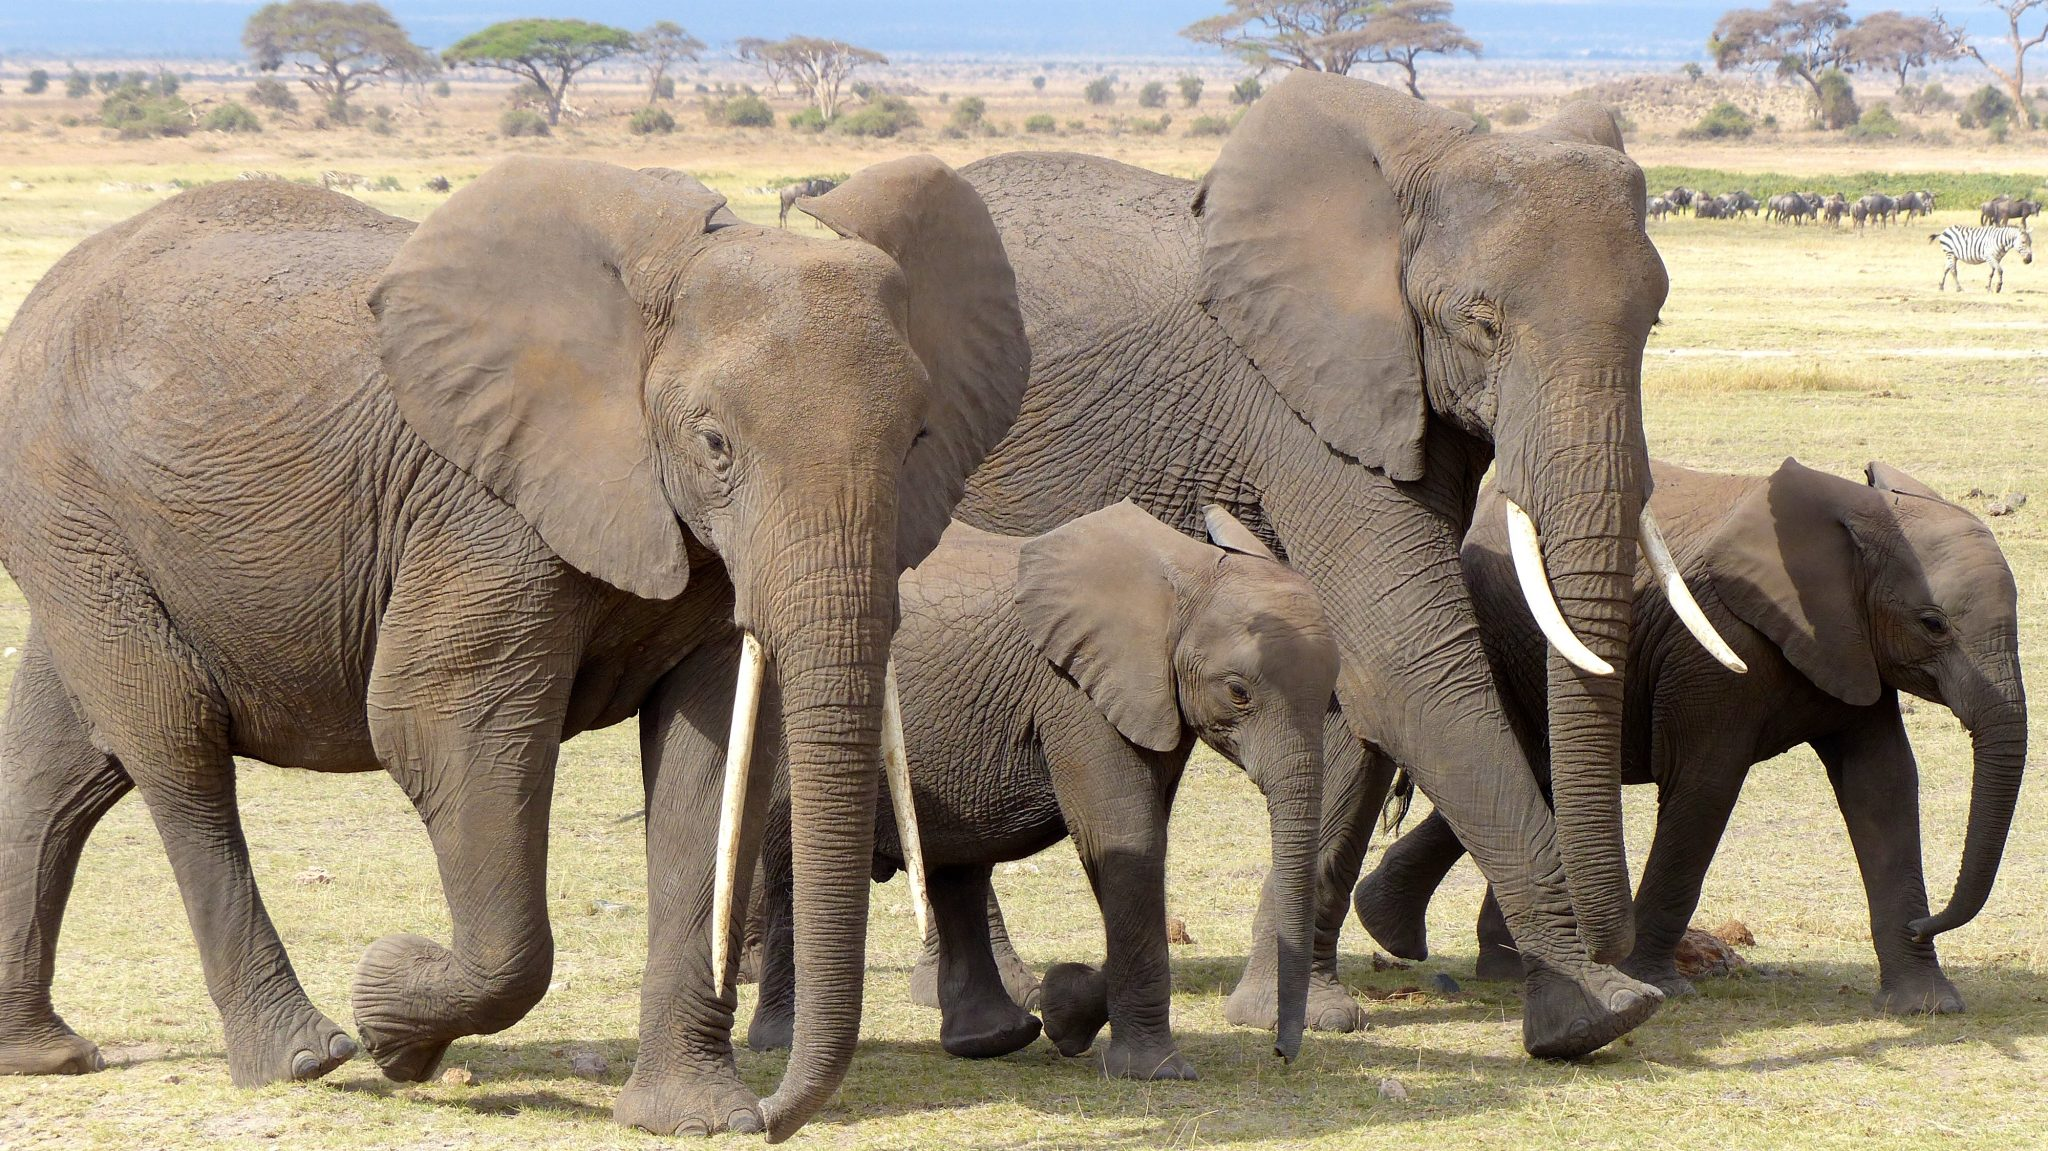 Africa - Safari elephants